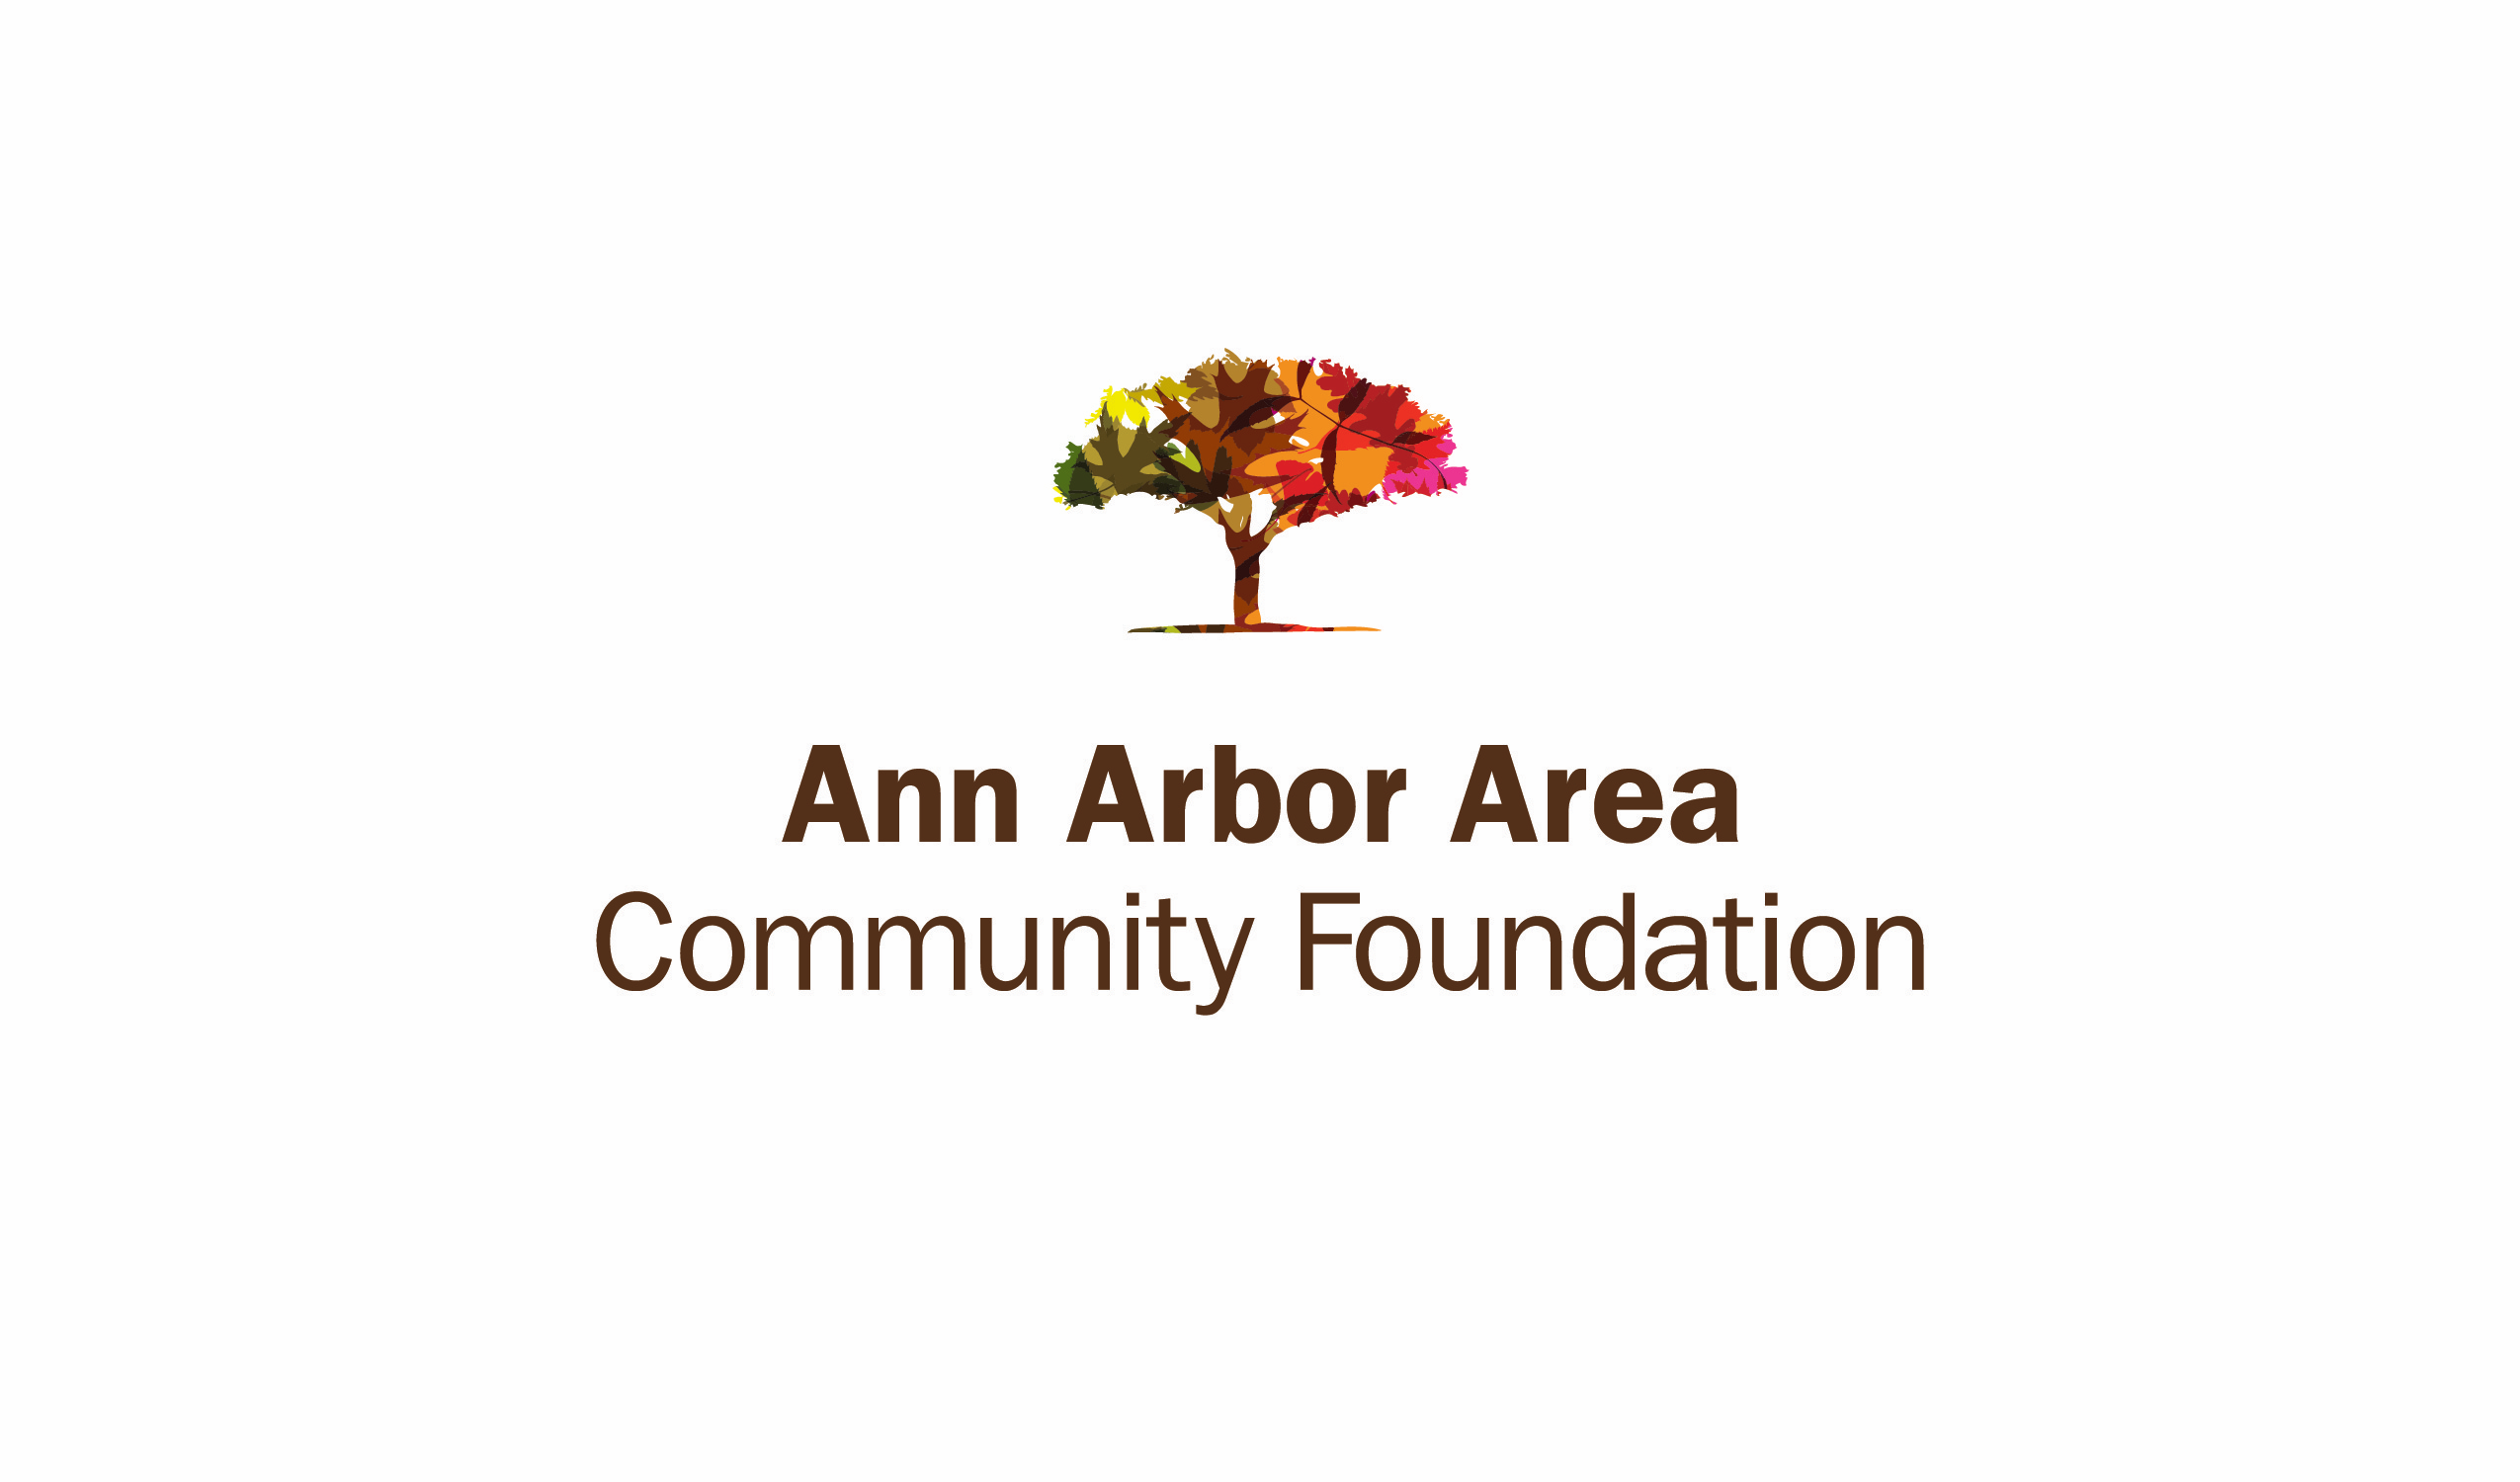 the ann arbor area community foundation logo of a multicolored tree with leaves that resemble autumn